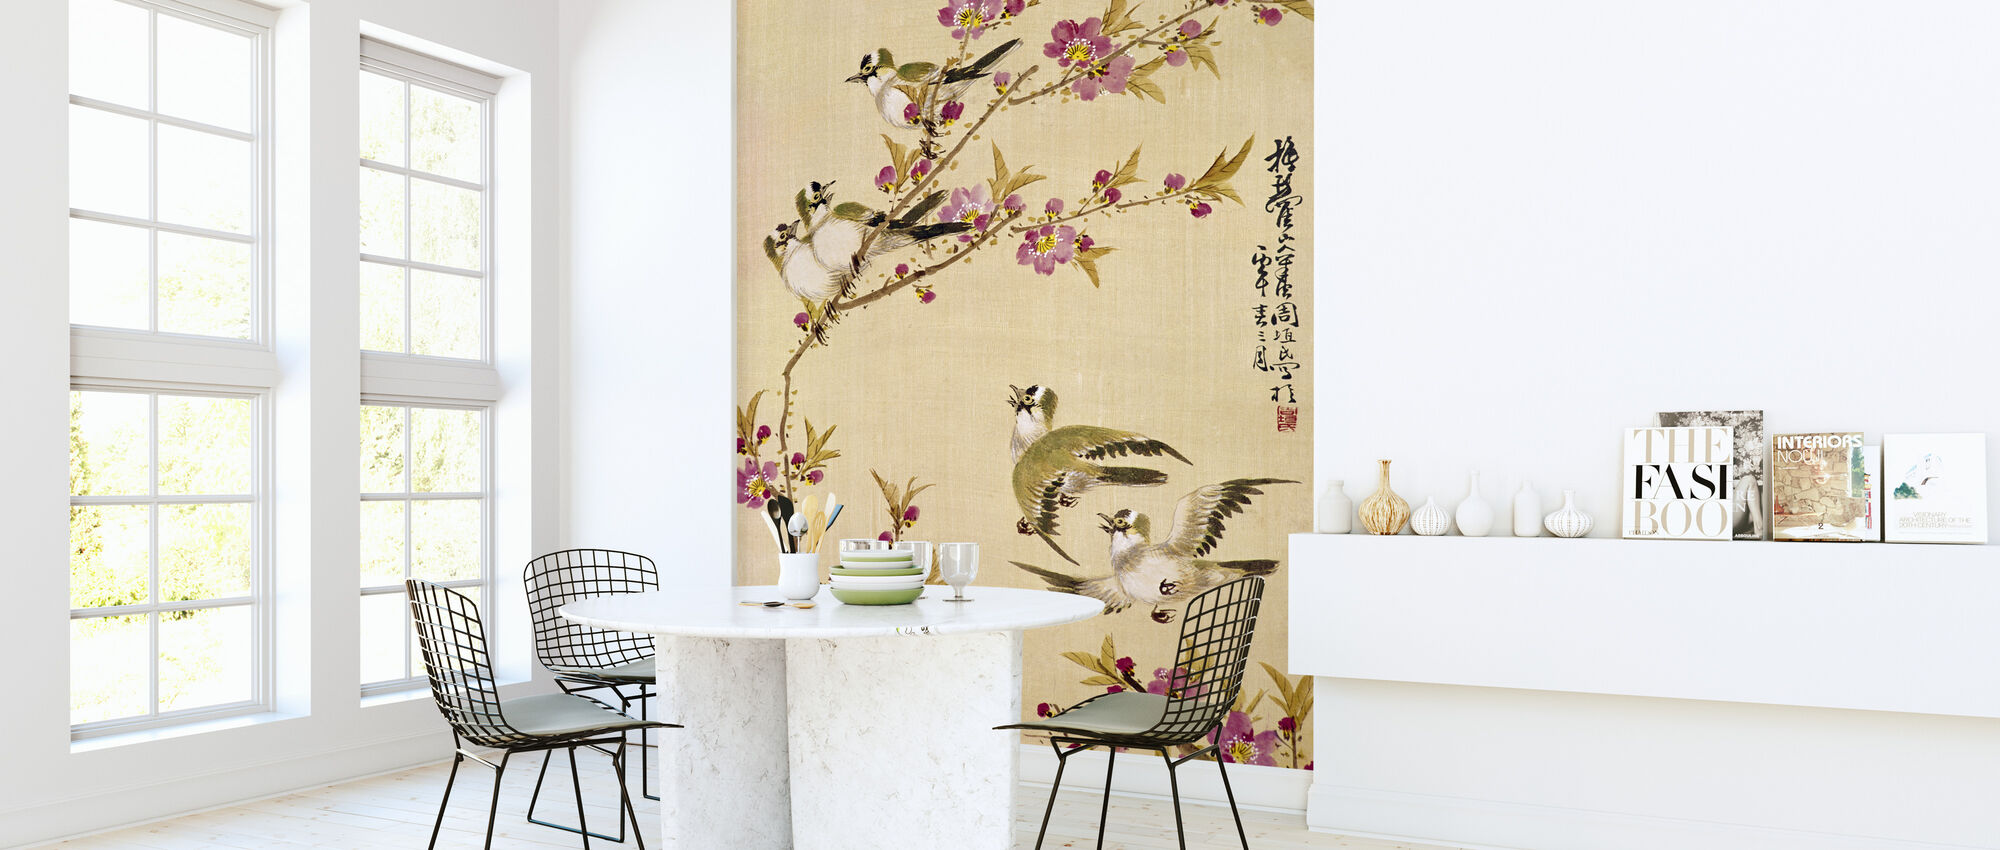 Five Birds with Pink Blossoms - Wallpaper - Kitchen